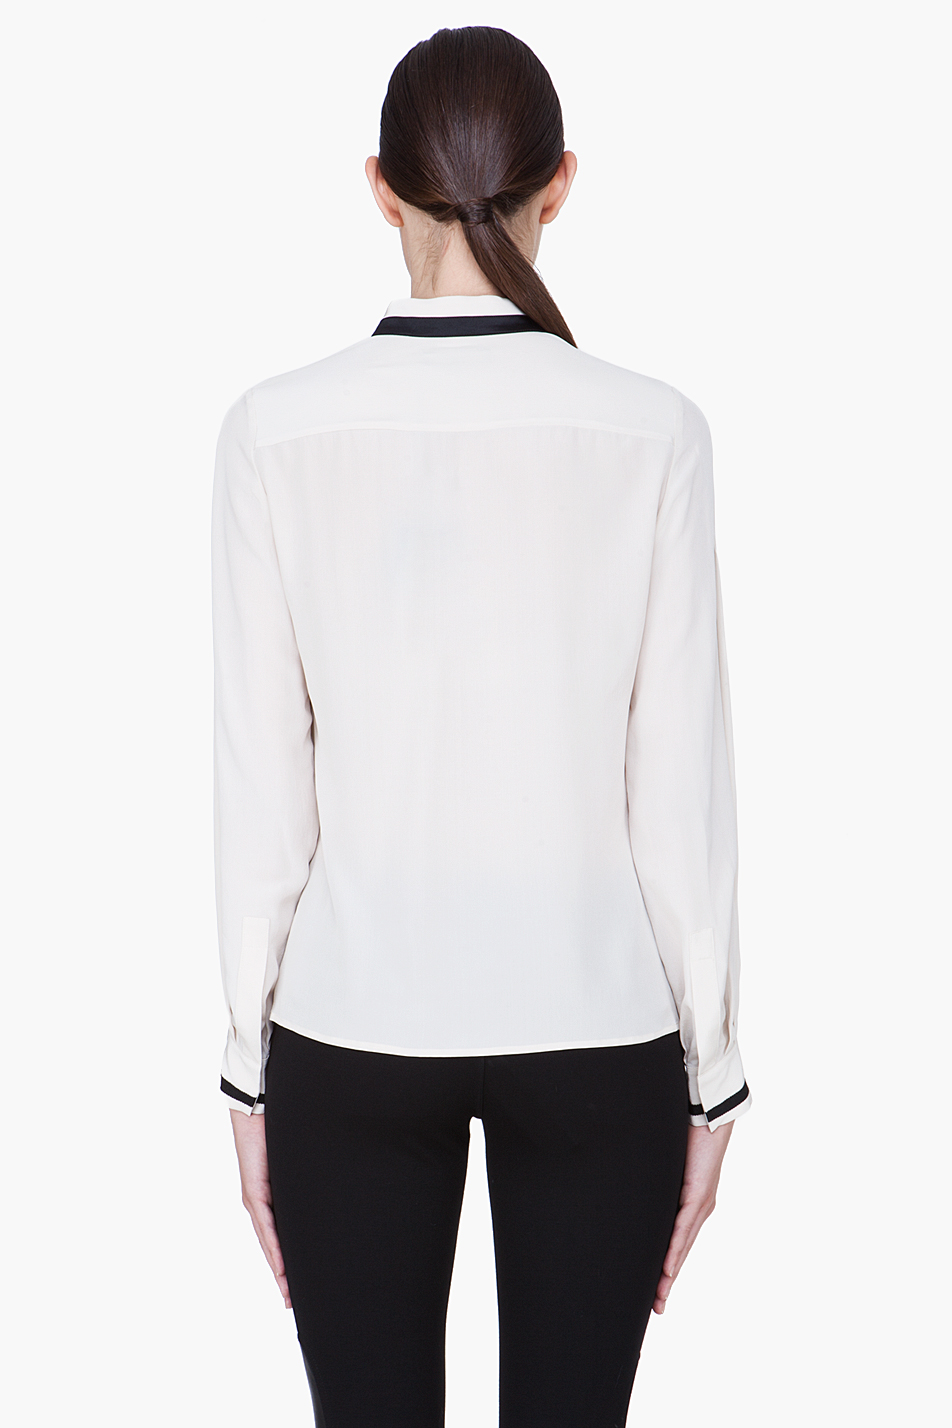 barbara blouses Shop classy vintage, boho and diy style blouses online color of pattern blouses range from black, white and blue.